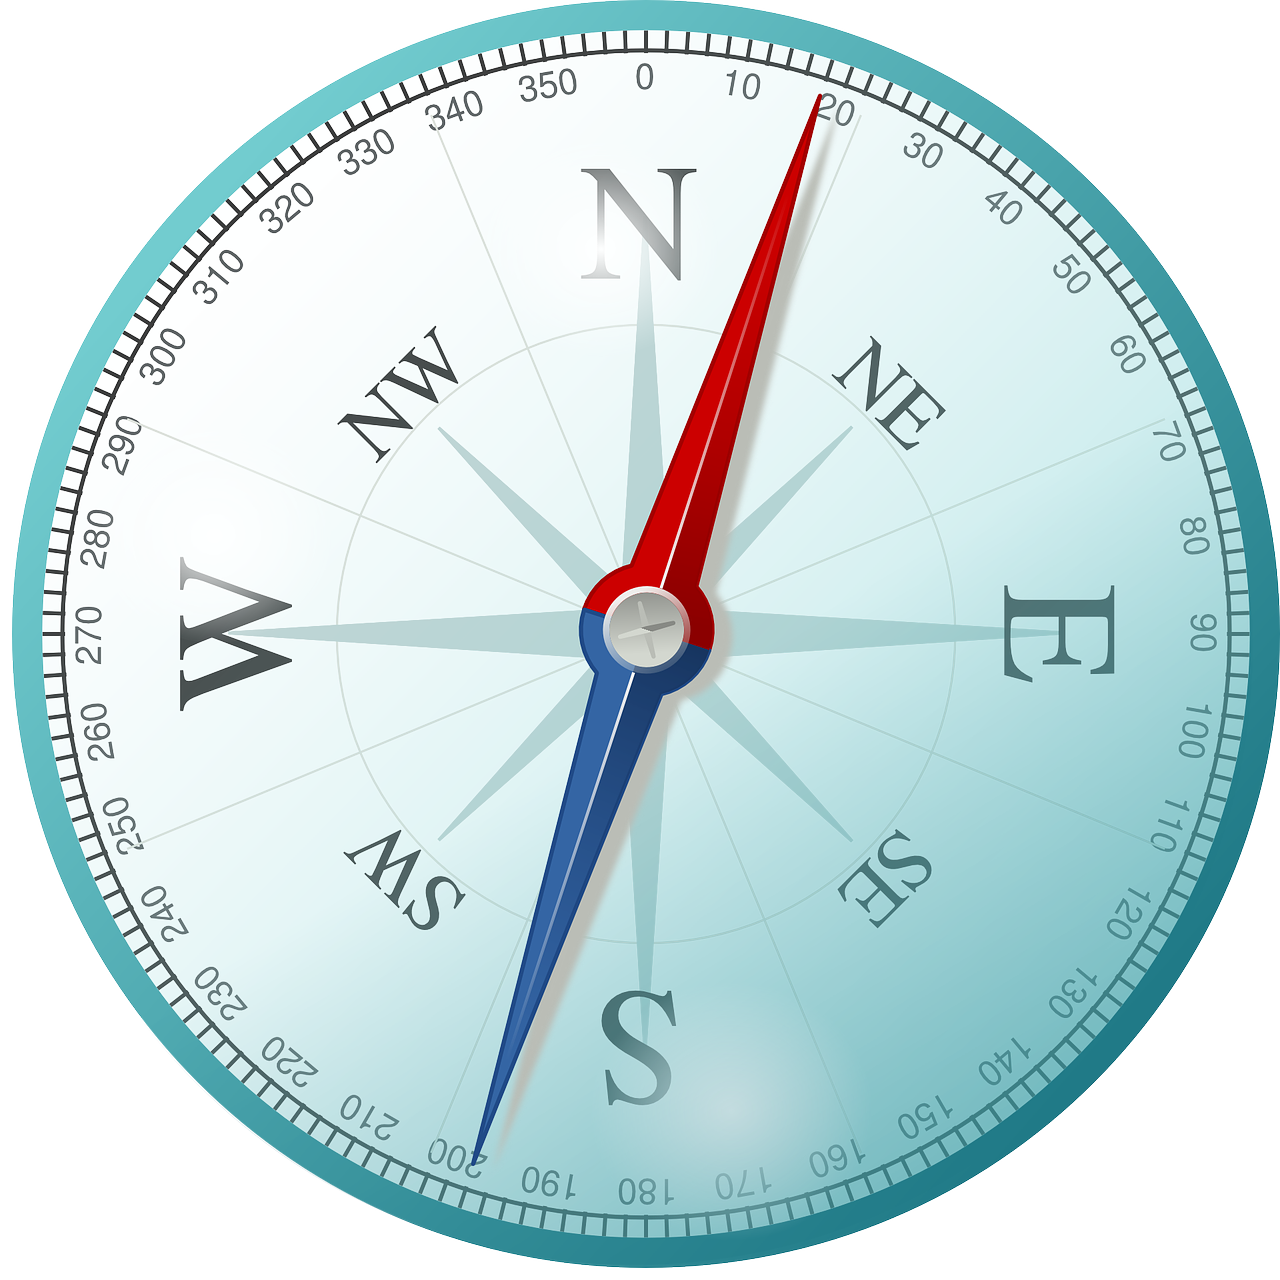 Changing Your Blog Focus: The 180 Degree Pivot - Compass - Adrian Colin Doyle